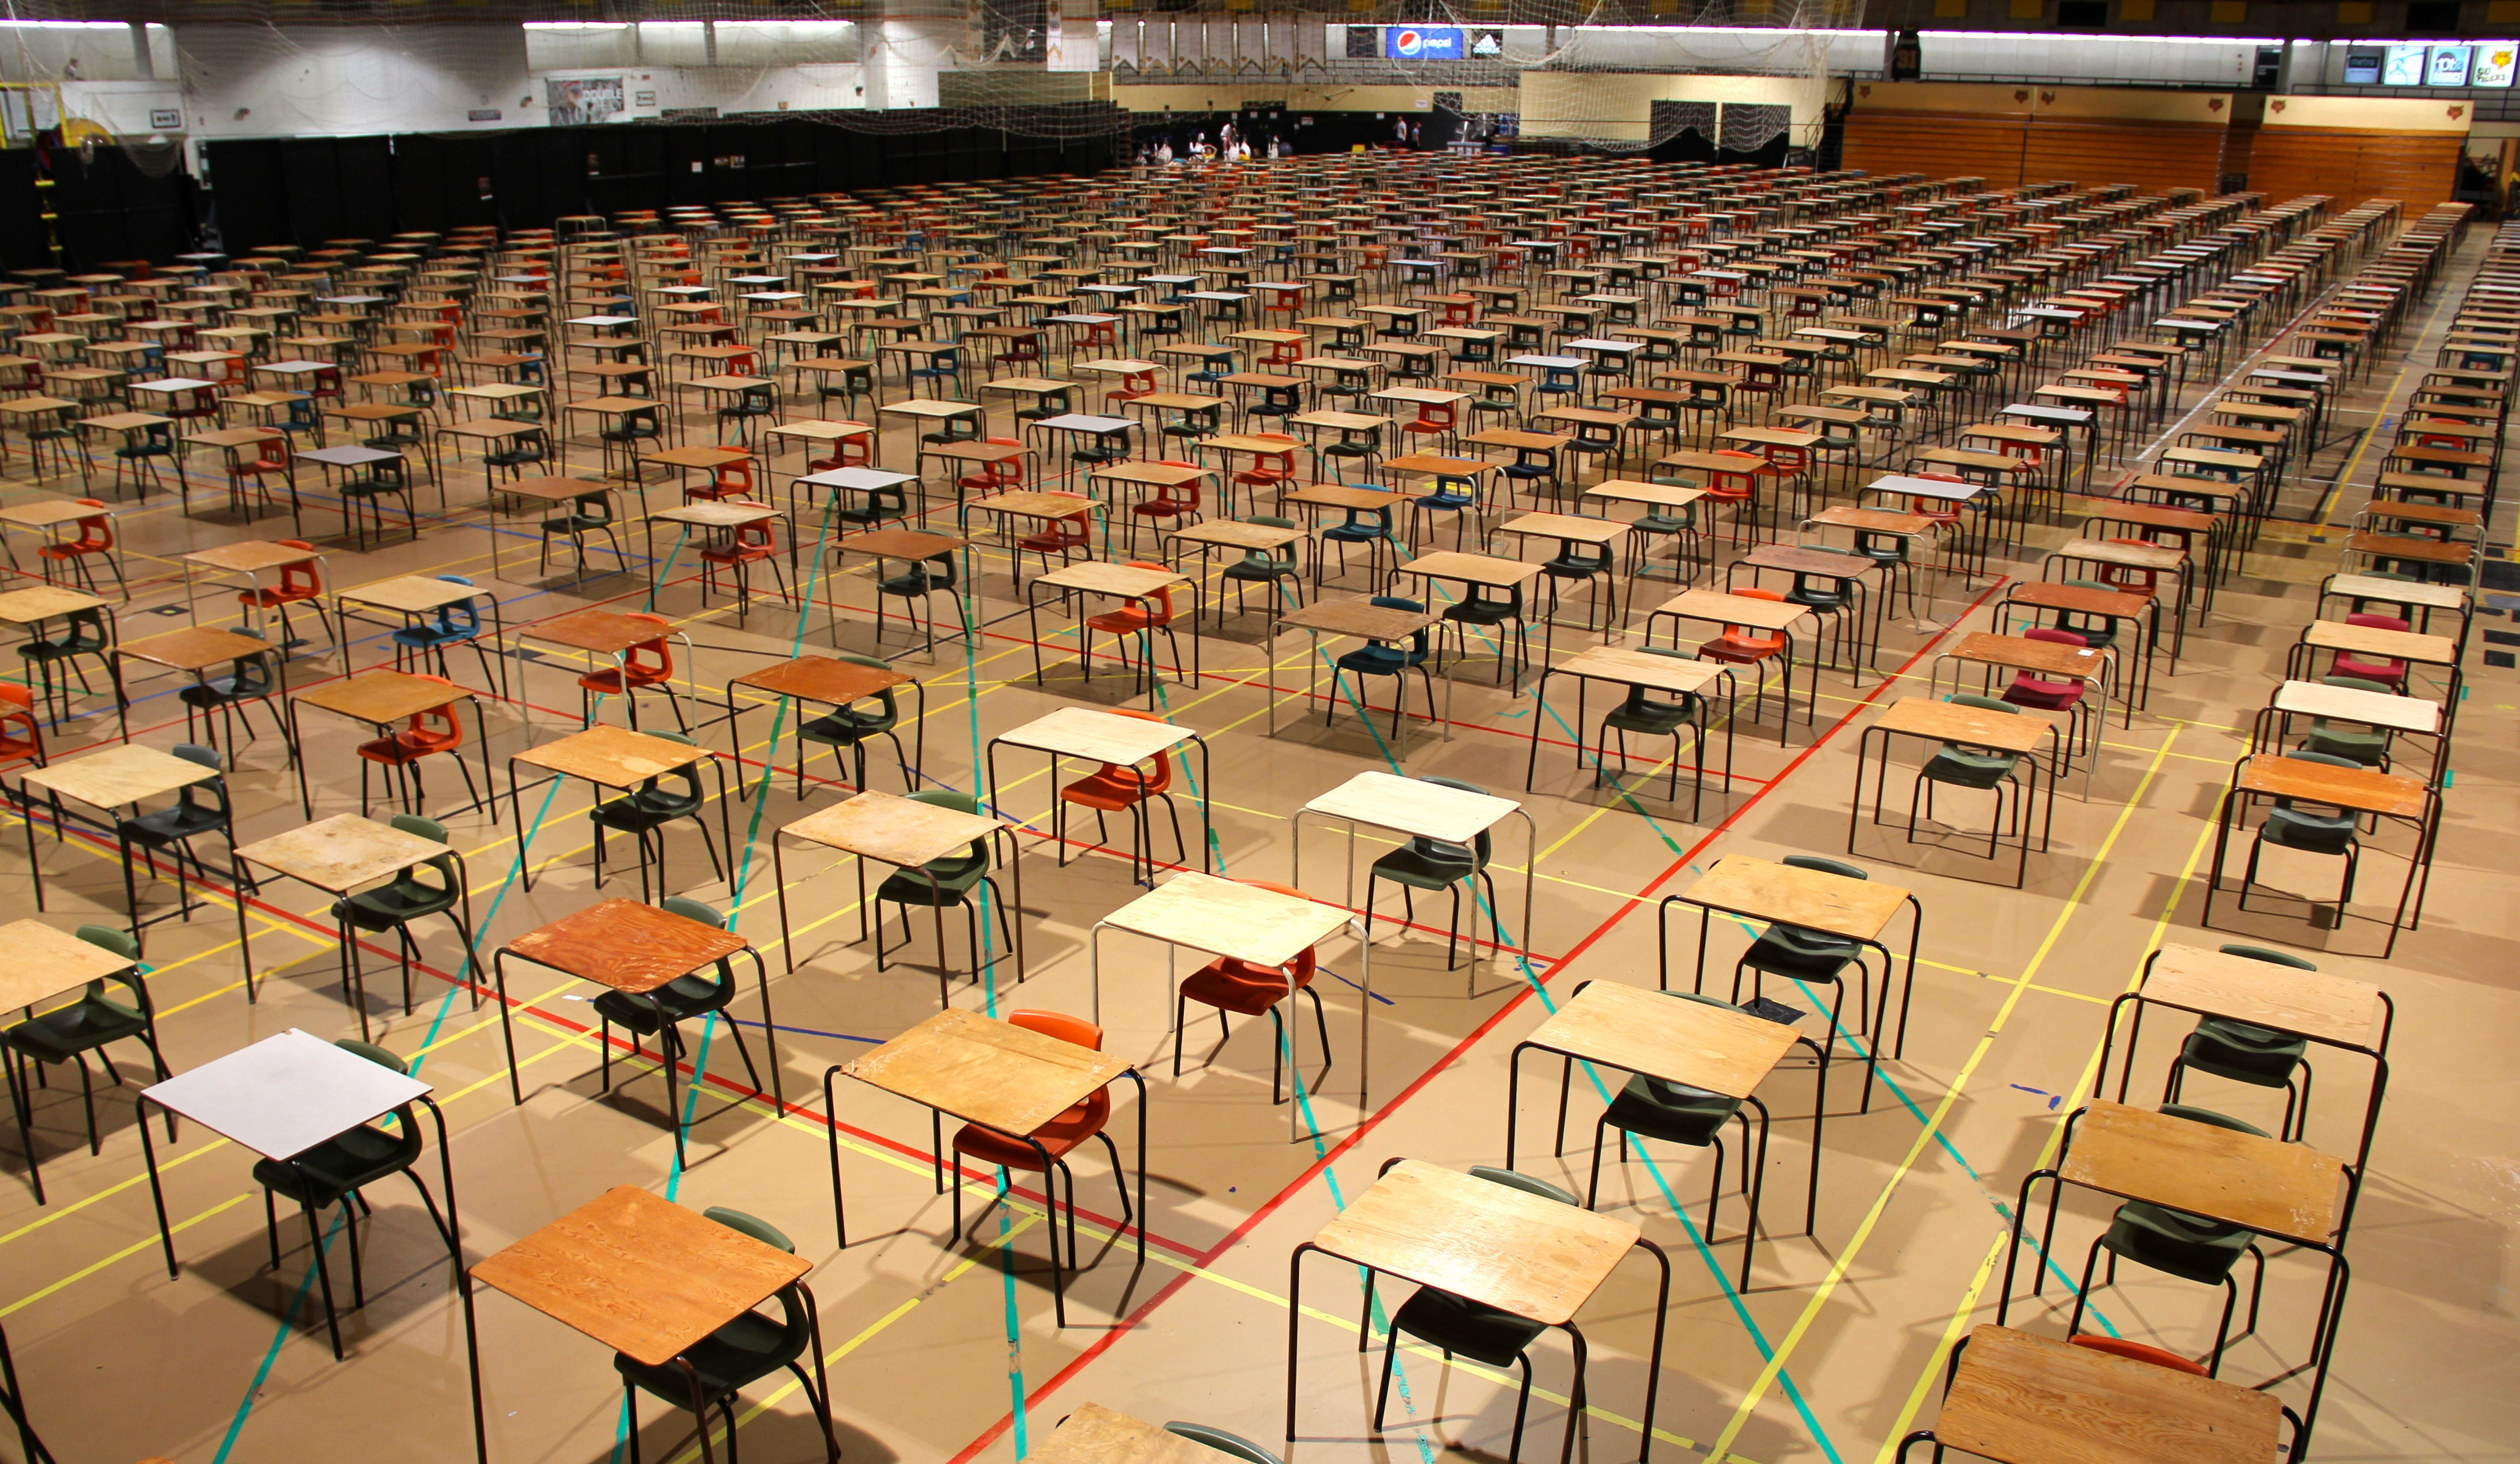 Nearly 2,000 desks line the Dalplex fieldhouse as the exam period kicked off on Wednesday. (Photo by Ian Froese)